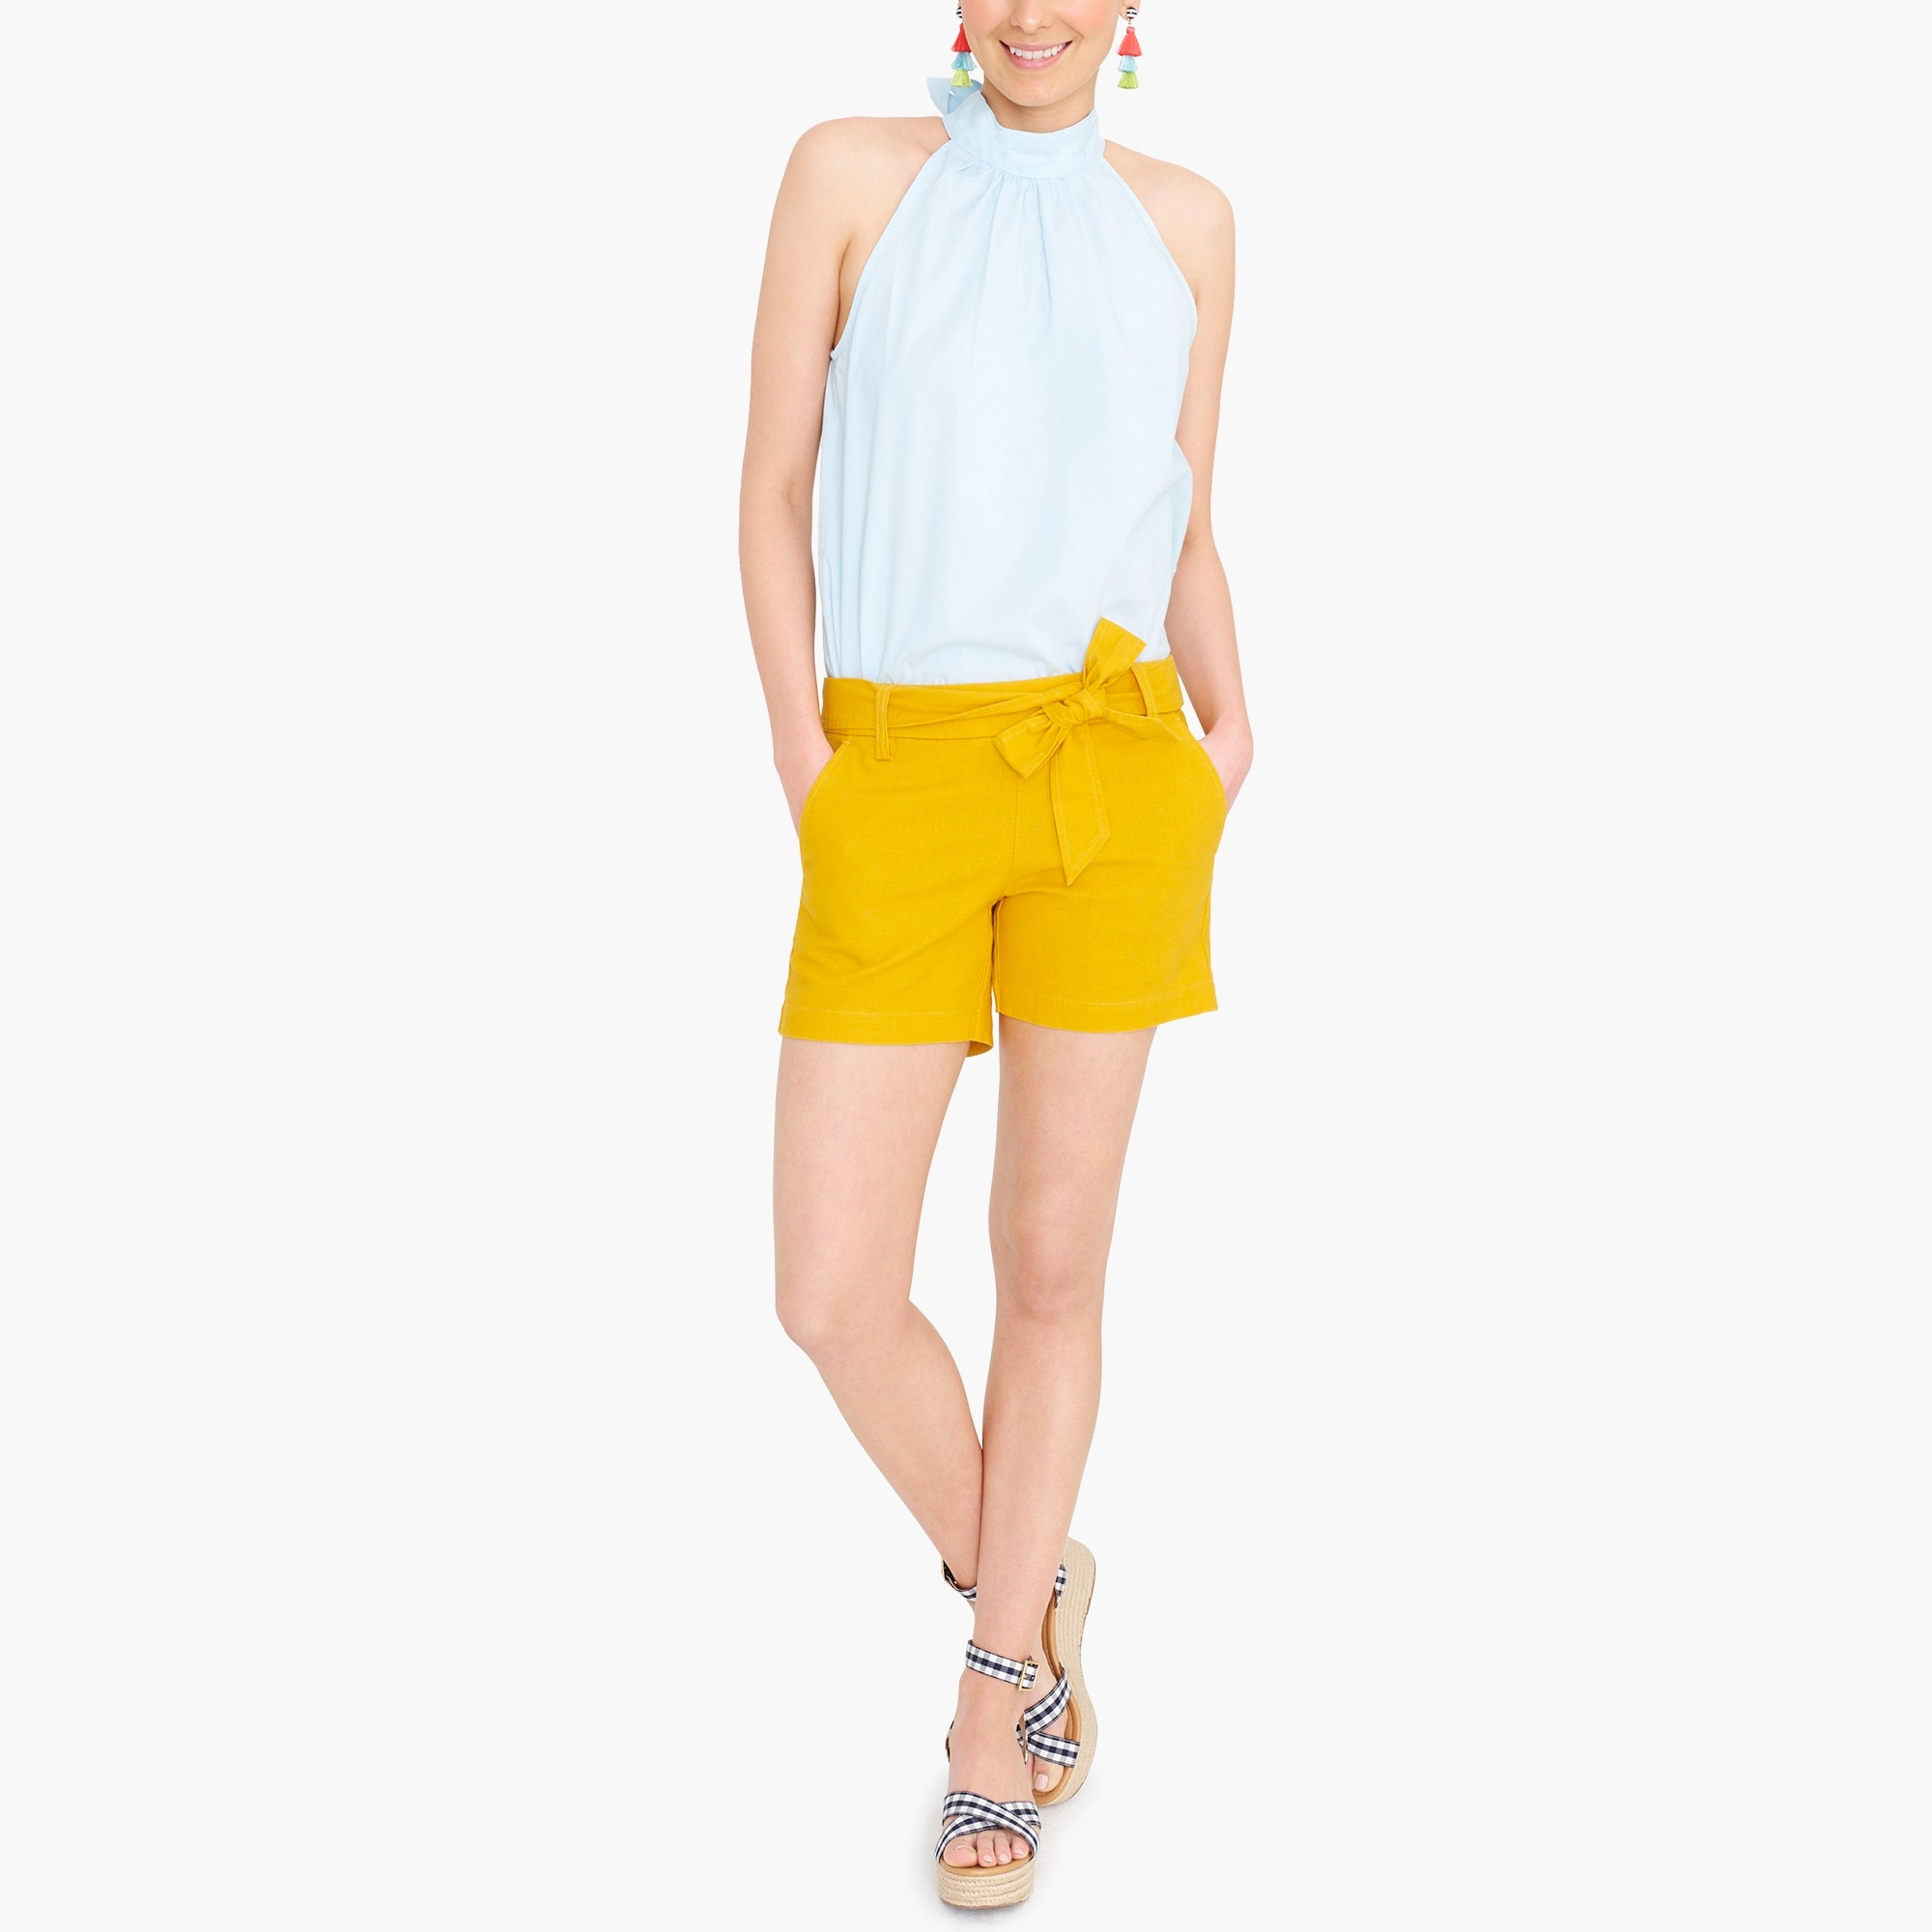 factory womens Sleeveless tie-neck top